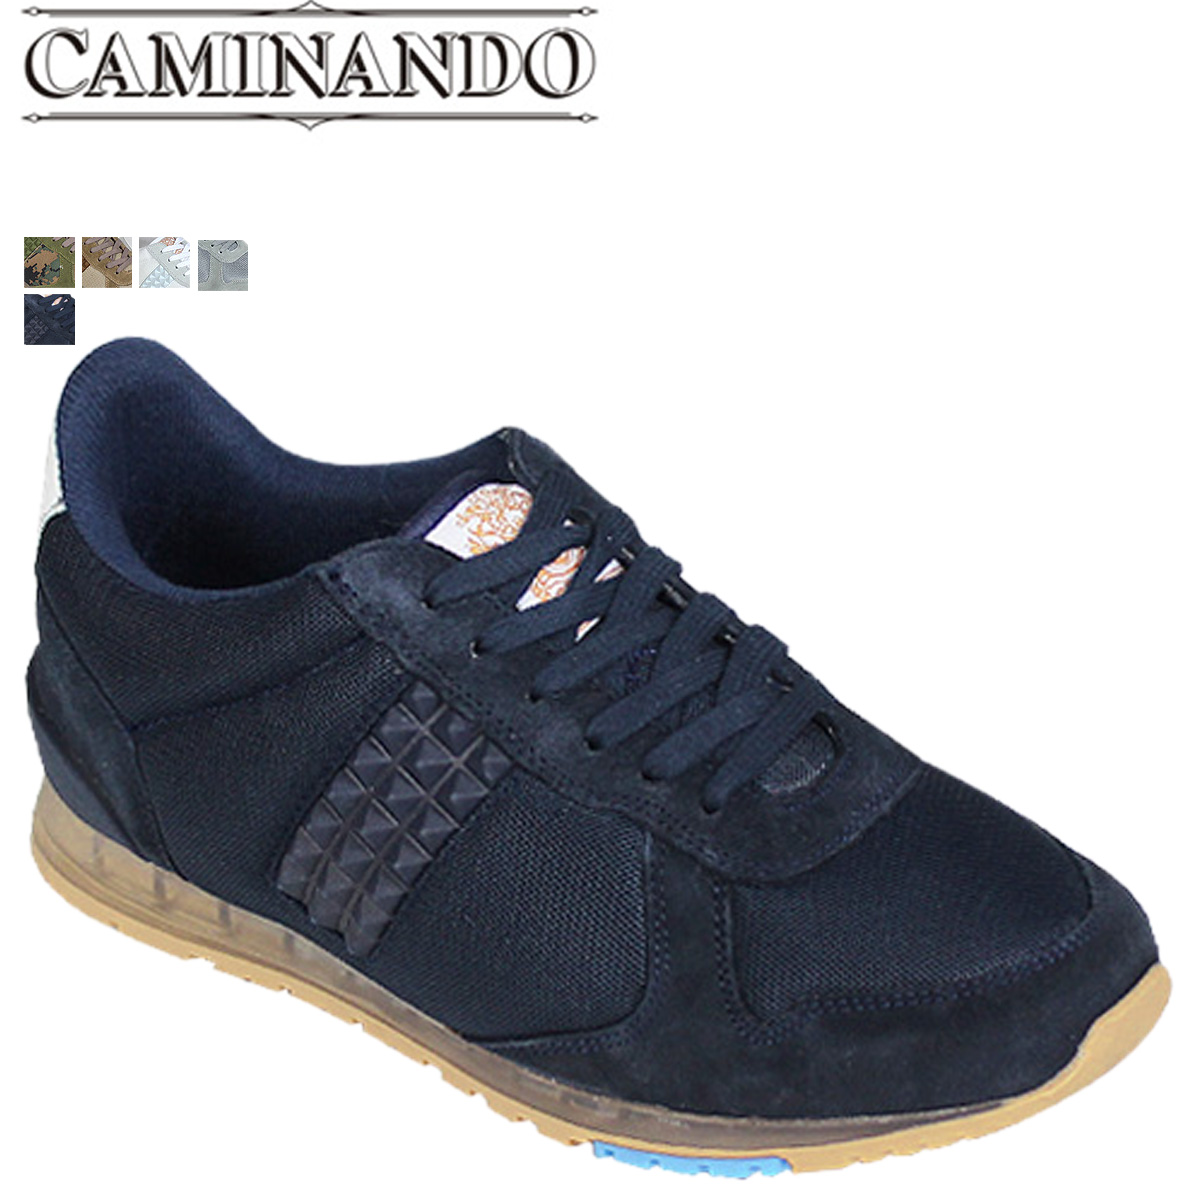 02ca9ec019ba Point 2 x caminando CAMINANDO studded trainer sneaker STUDS TRAINERS suede  x mesh mens shoes 2014 years receiving 1427 5 color  regular  02P01Nov14